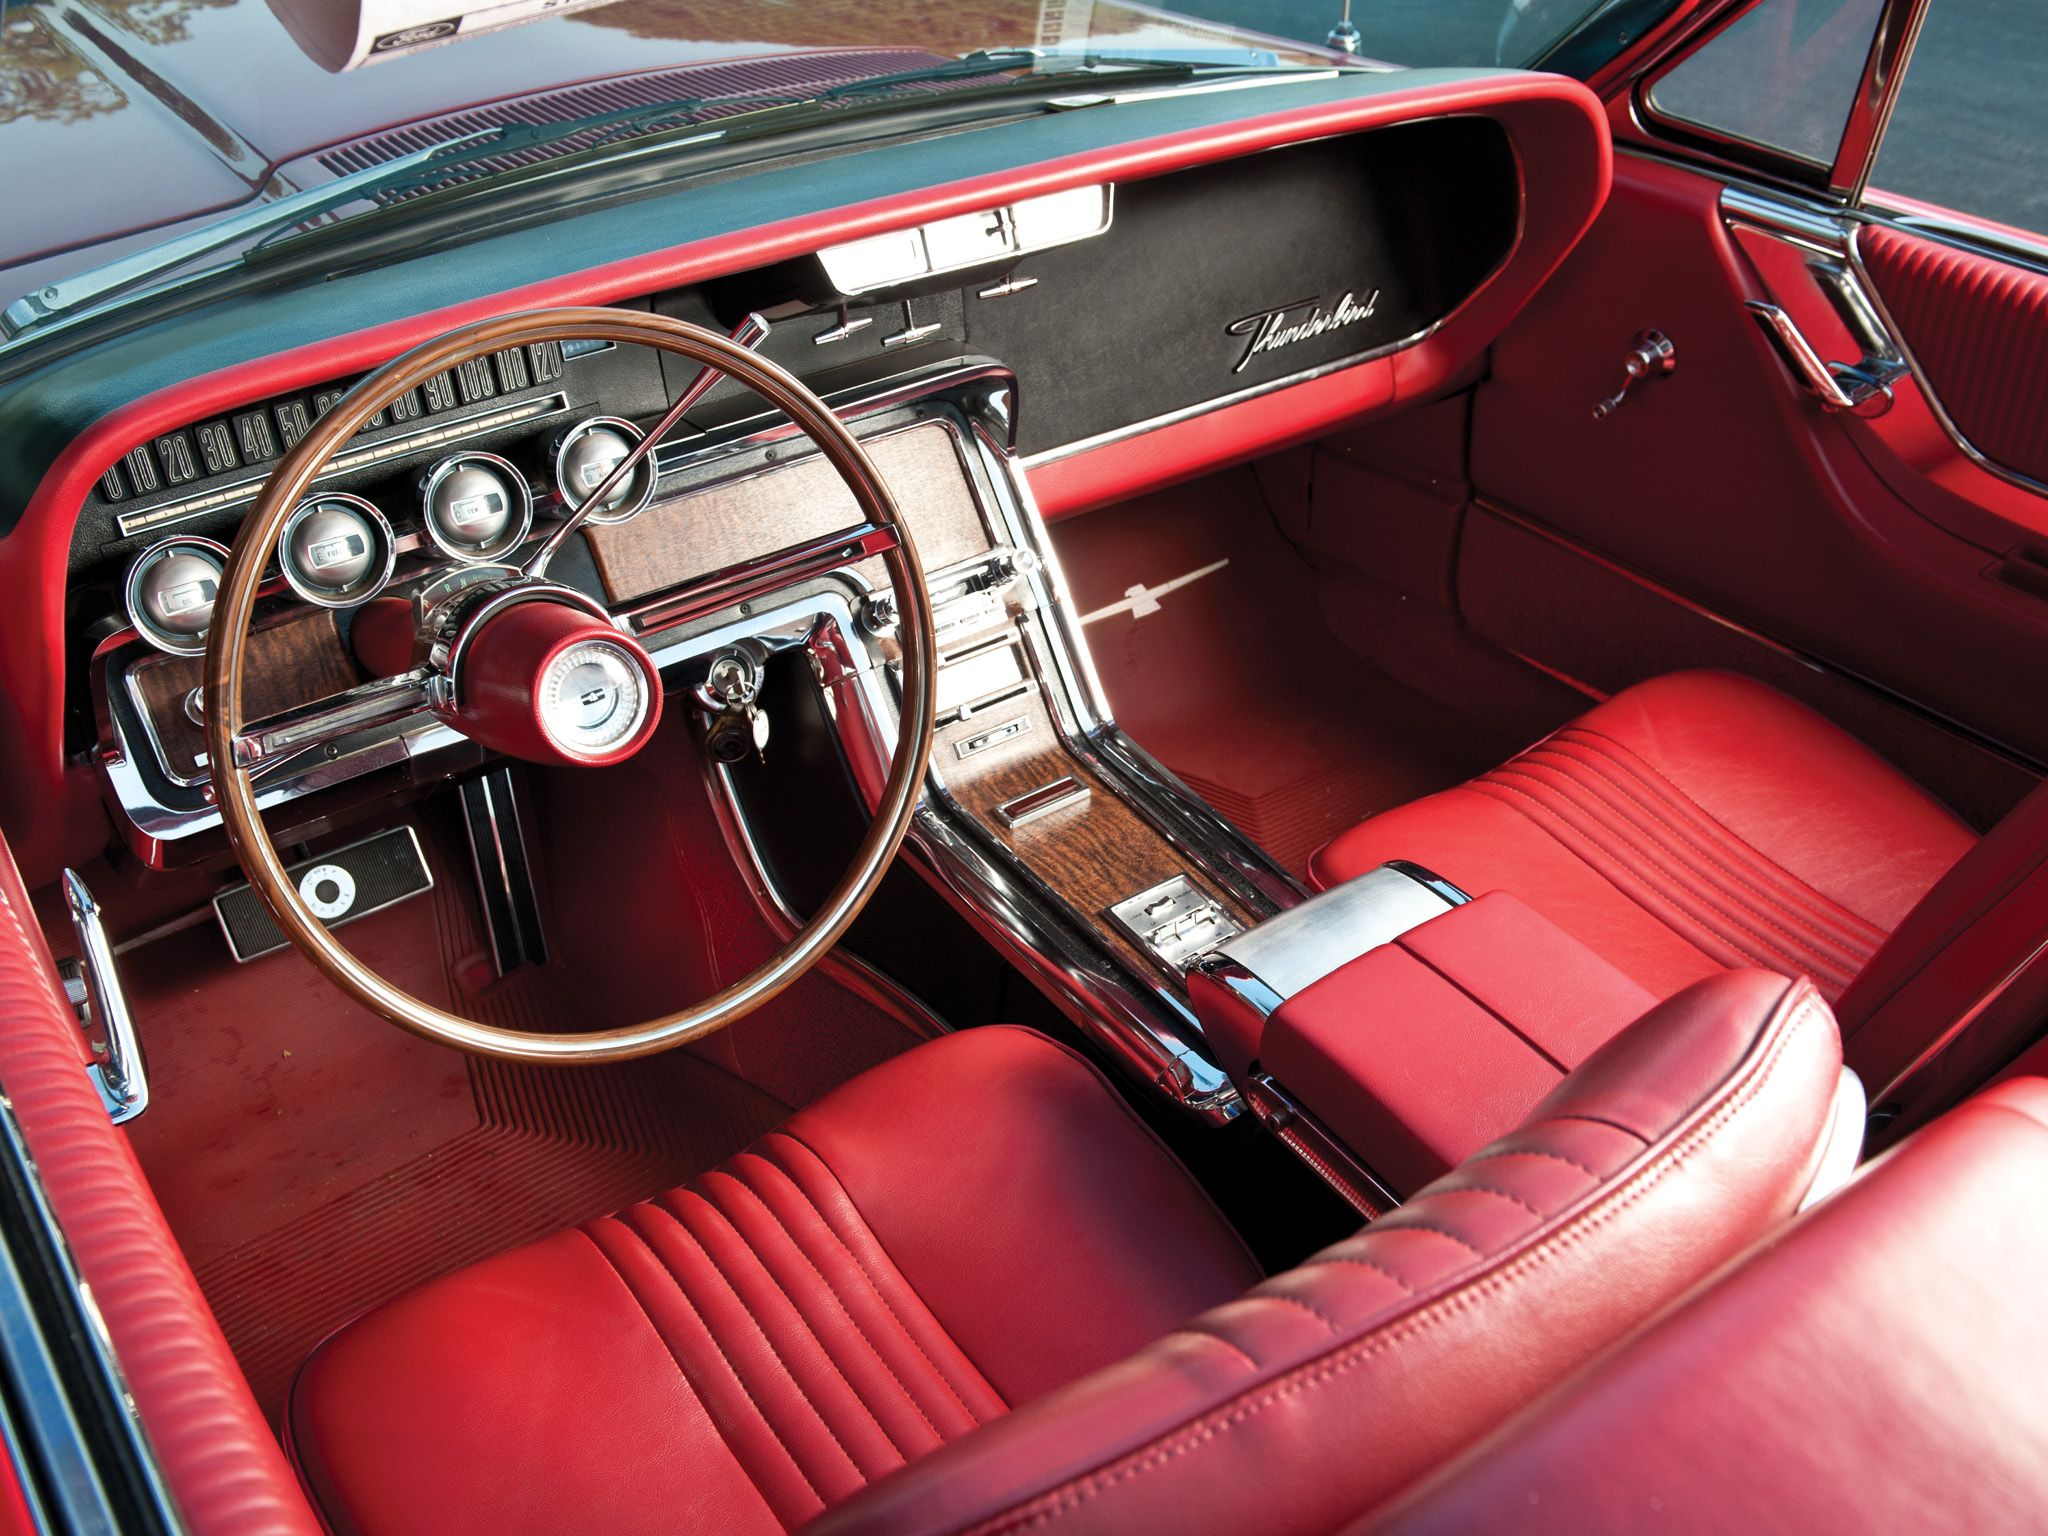 66 Thunderbird Interior